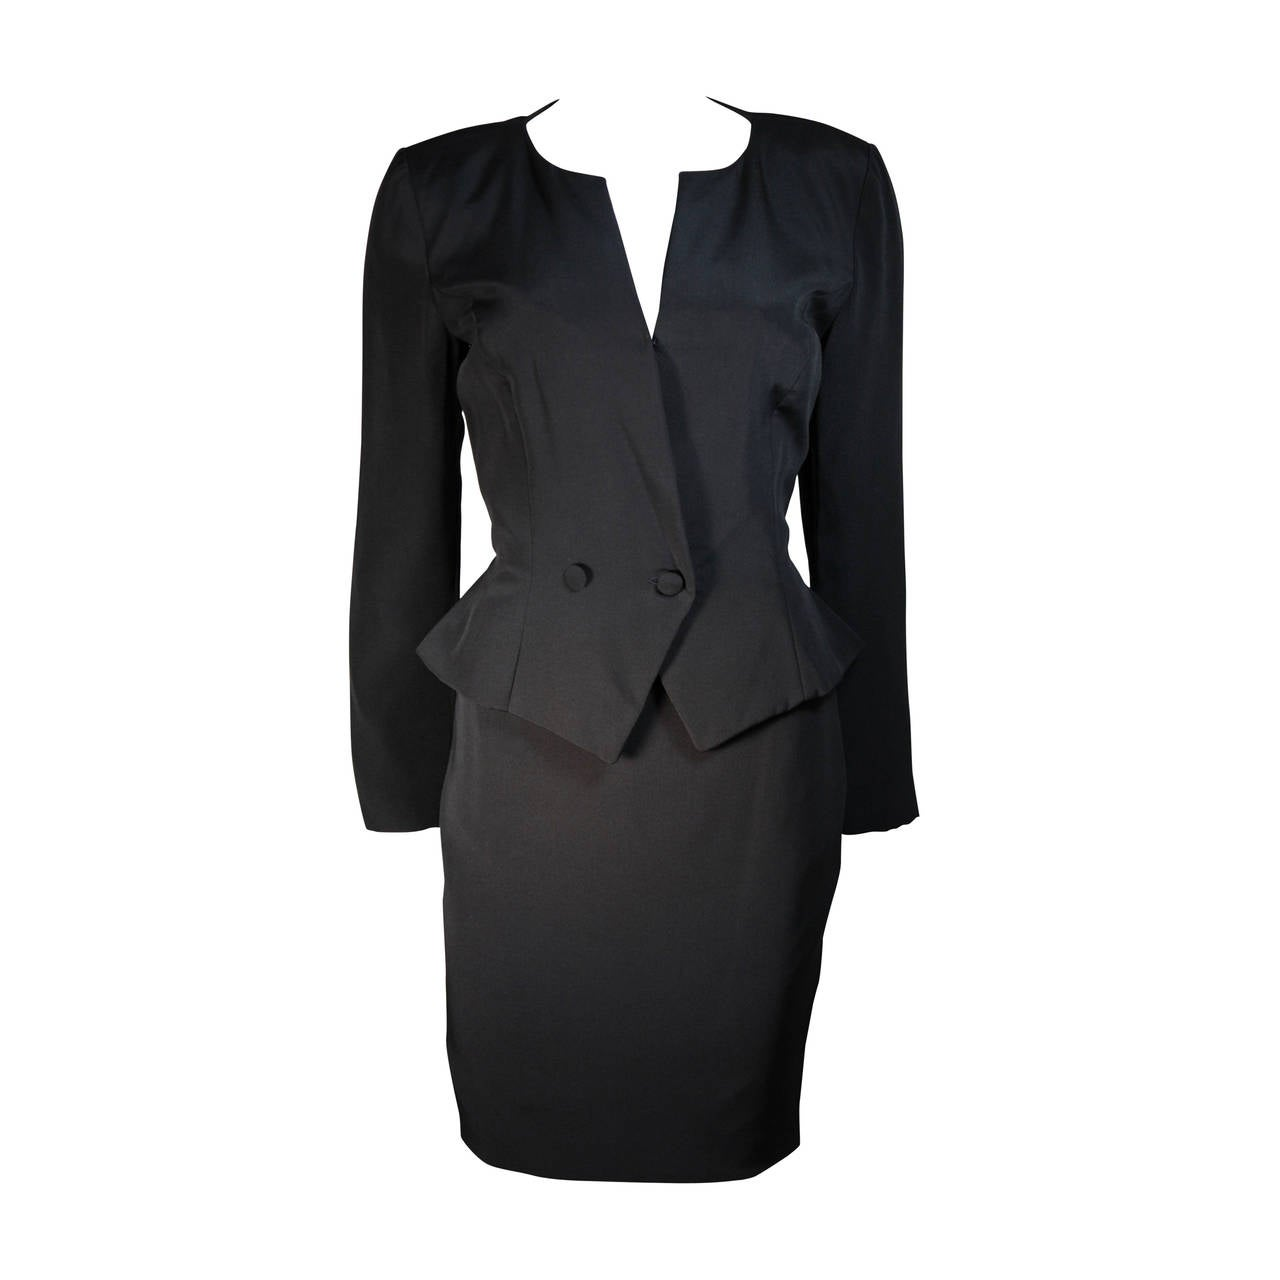 Vicky Tiel 3pc Black Silk Skirt Suit with Lace Back Panel Size Small